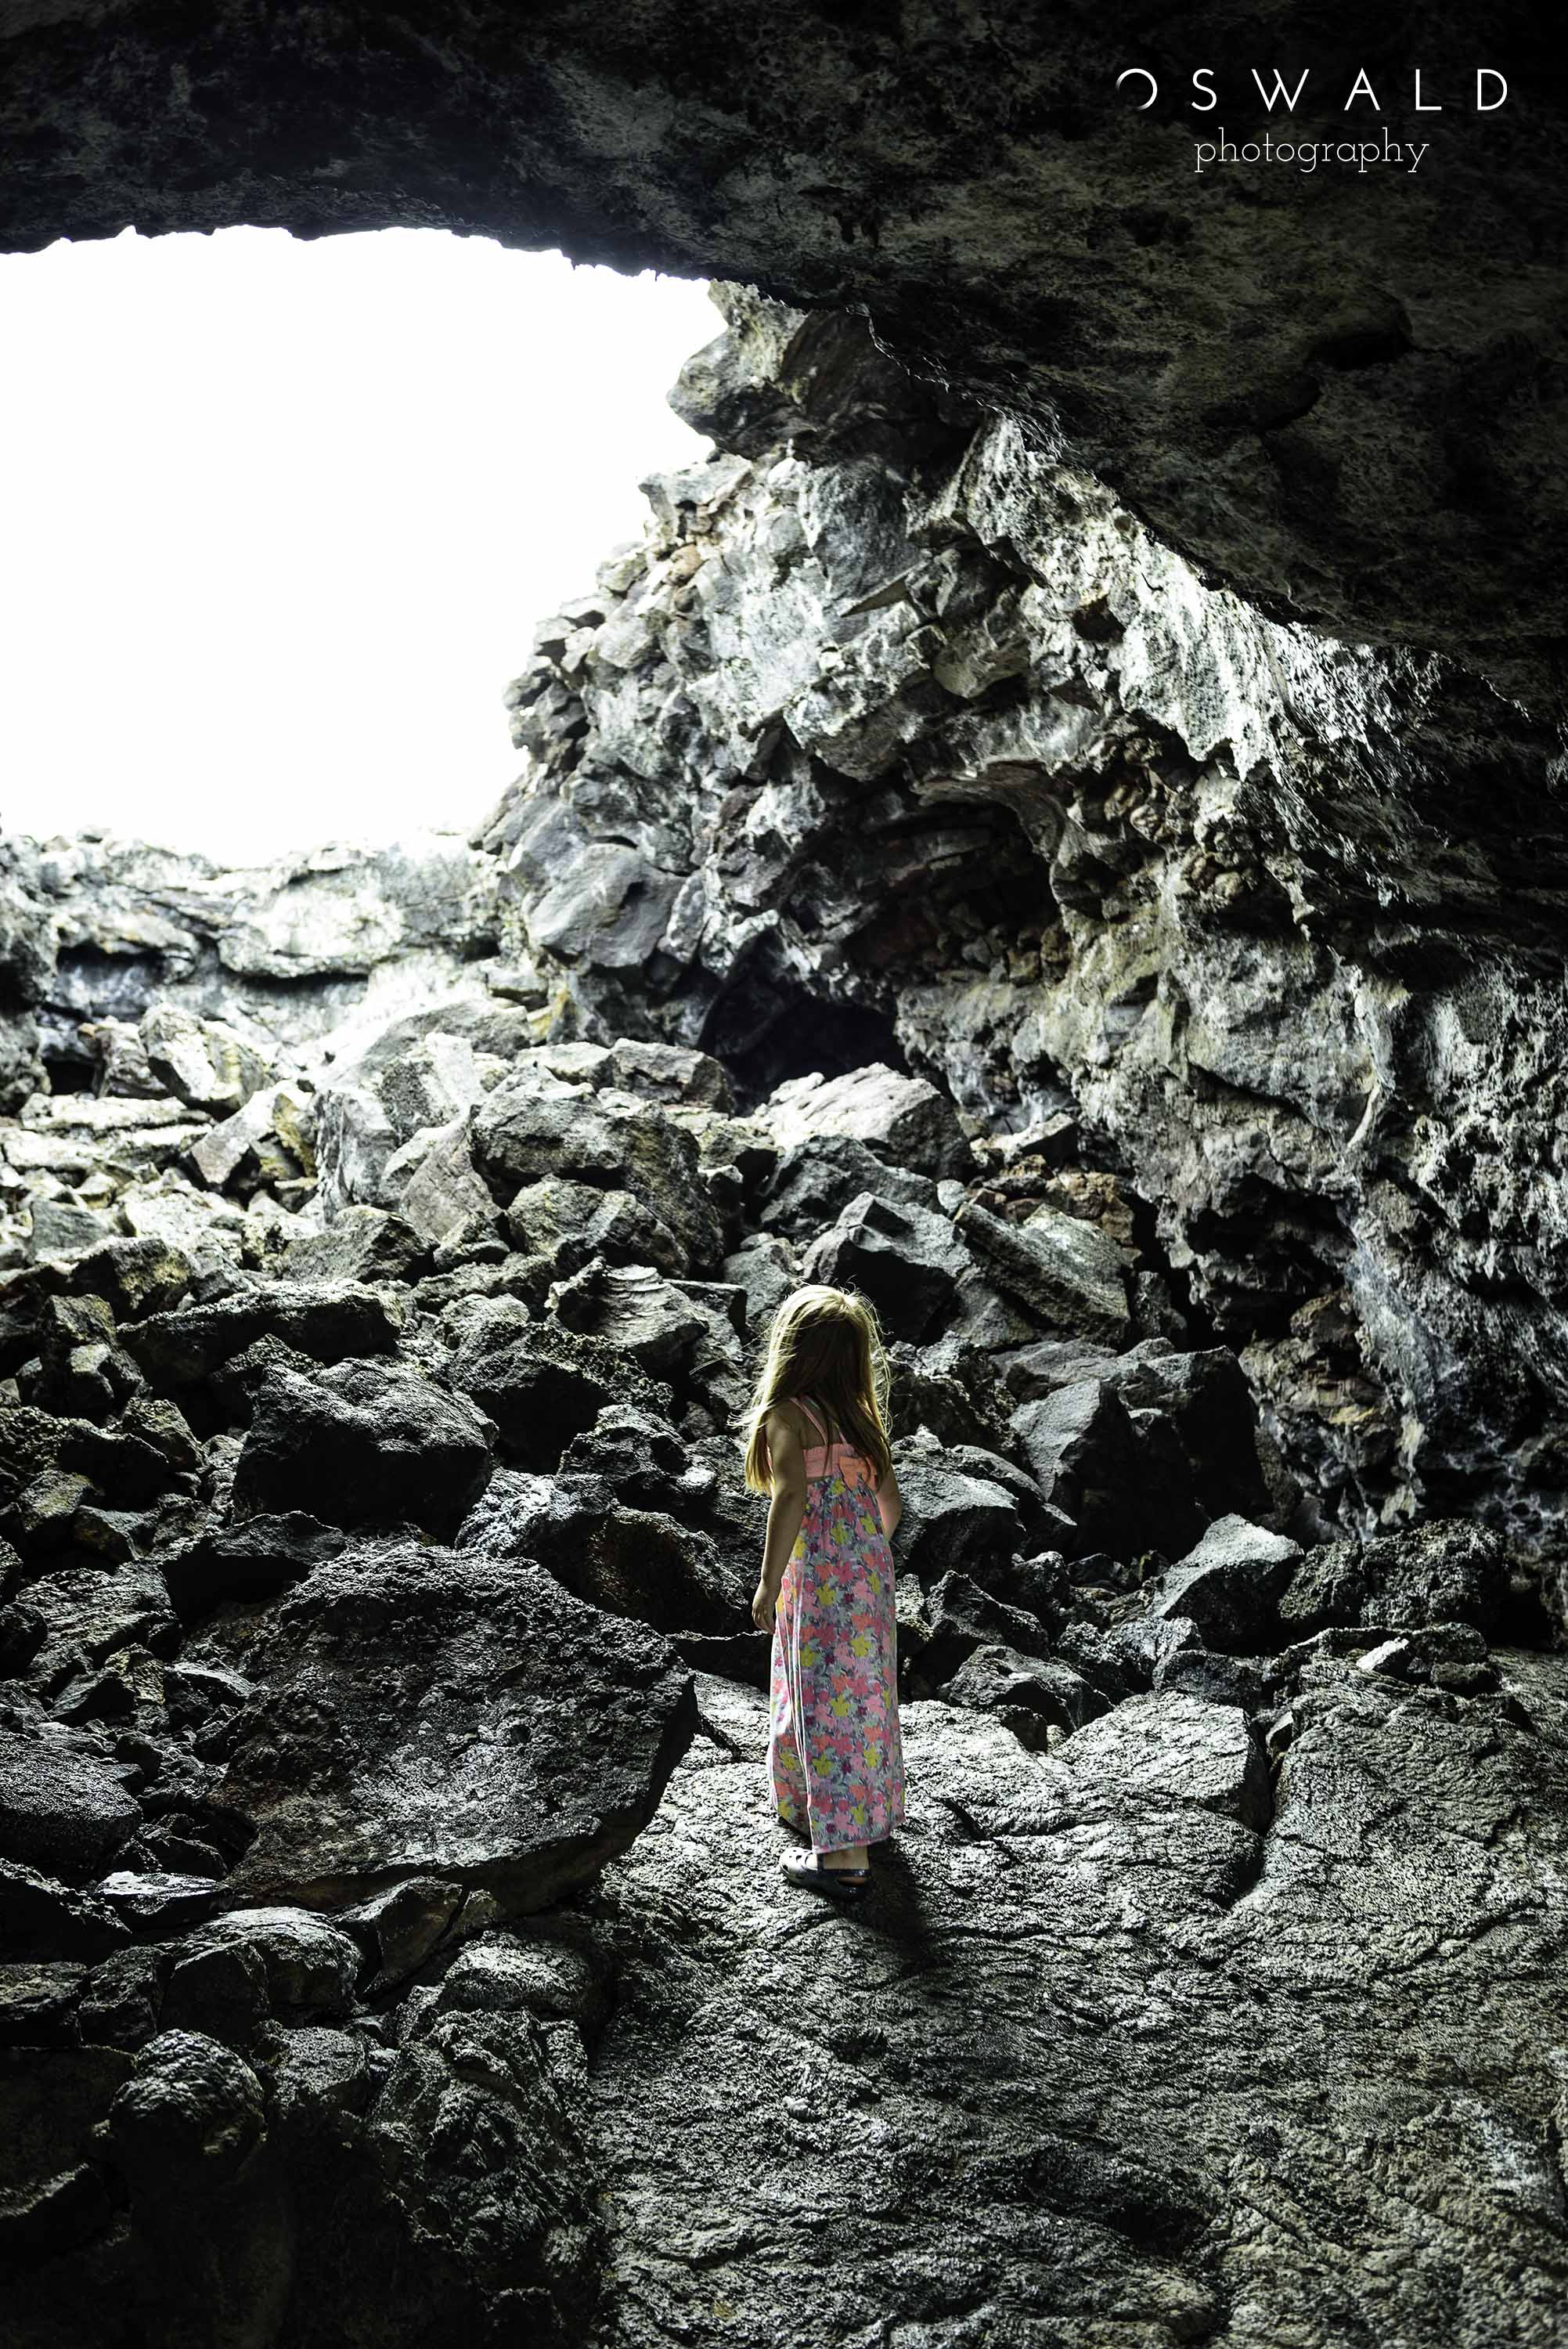 A little girl in a colorful dress looks up and out of the mouth of a lava tube near Kona, Hawaii.